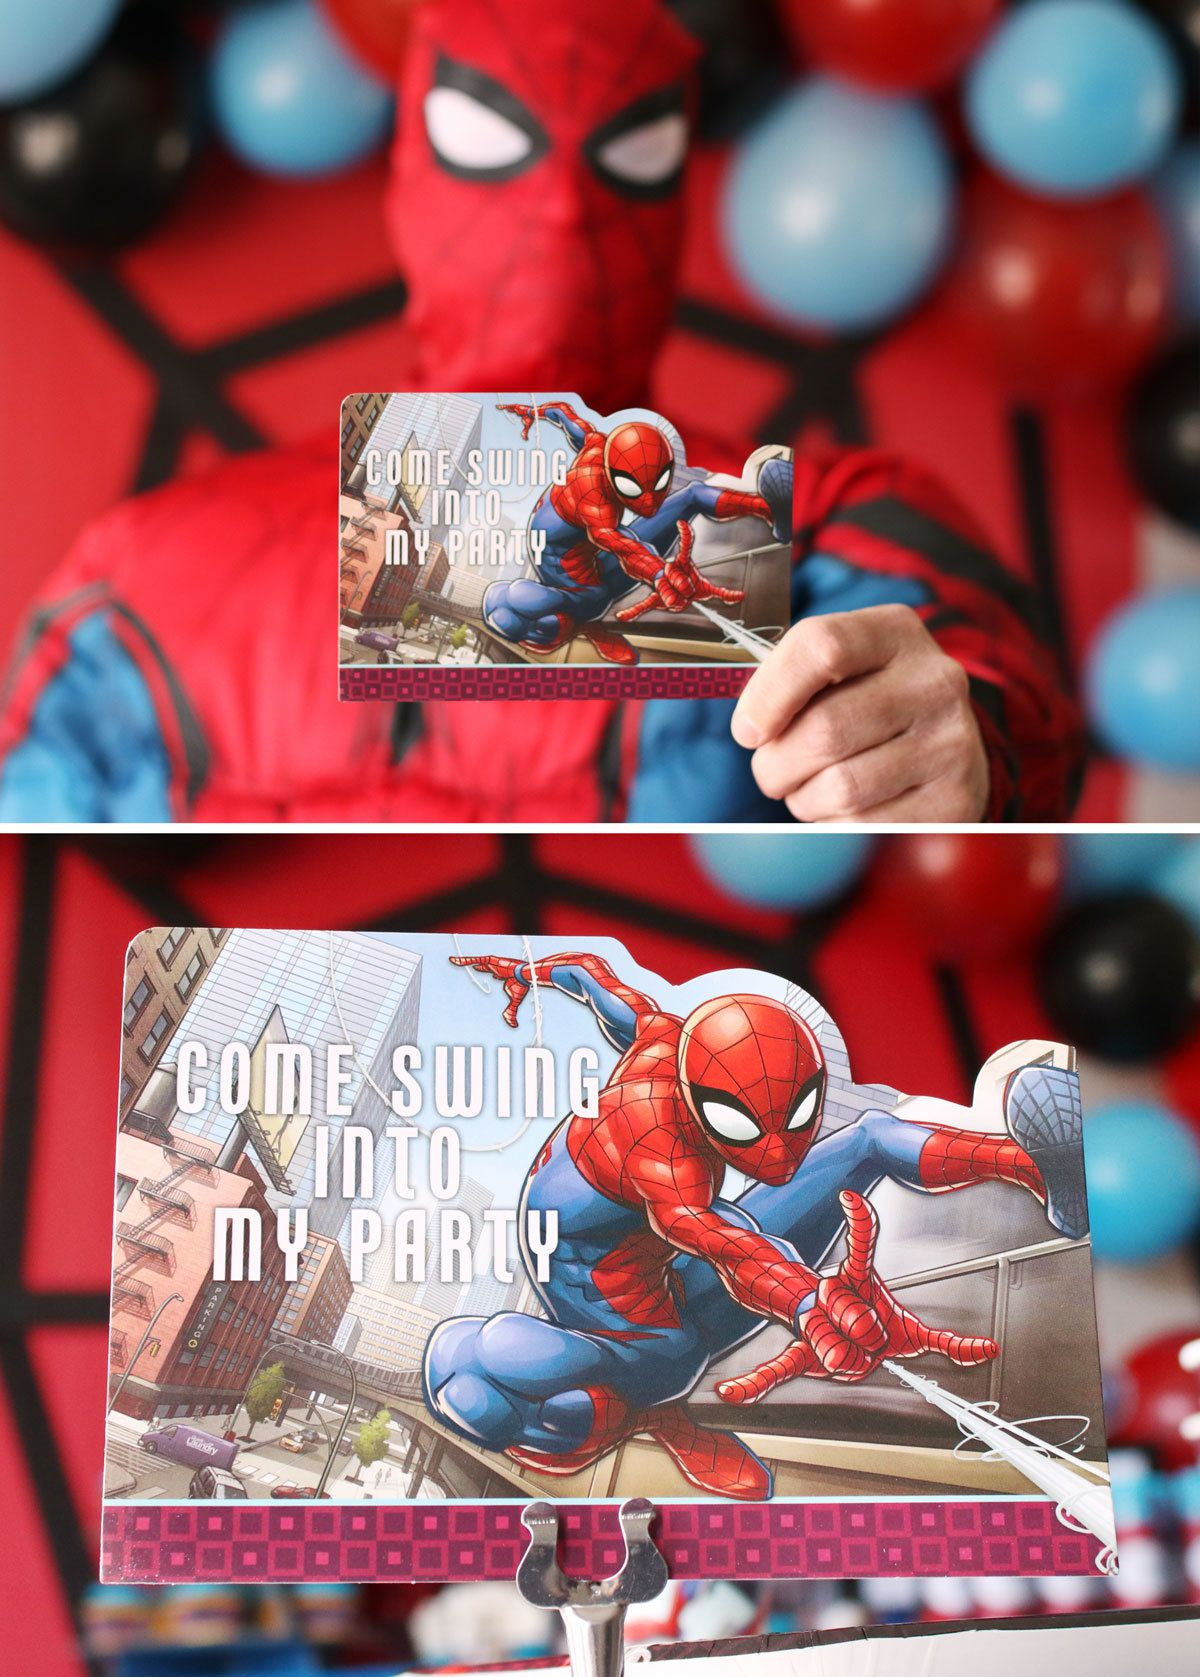 It's hard not to love your friendly neighborhood Spider-Man. He's always there to save the day! Just think about all the crime that would be happening if Peter Parker hadn't been bitten by a radioactive spider. We might be seeing what the world would be like without Spider-Man thanks to the infamous snap at the end of Avengers: Infinity War, but we're holding out hope that this superhero will swing back into our lives again.  Spider-man proves that you don't have to be the biggest and toughest to still be a do-gooder! This agile web shooter has been gracing the small and big screen for over 60 years and he's one superhero that's still going strong!  Whether your son became a fan through the Marvel comics books, the Spider-Man television series, or has enjoyed the MANY movies of this famous franchise, he'll be your #1 fan after you throw him an amazing Spider-man party using our guide! Discover ways to hone in on this popular superhero with decorations that scale great heights and how to add personal touches that would make Uncle Ben proud.  Spider-Man Birthday Party Ideas